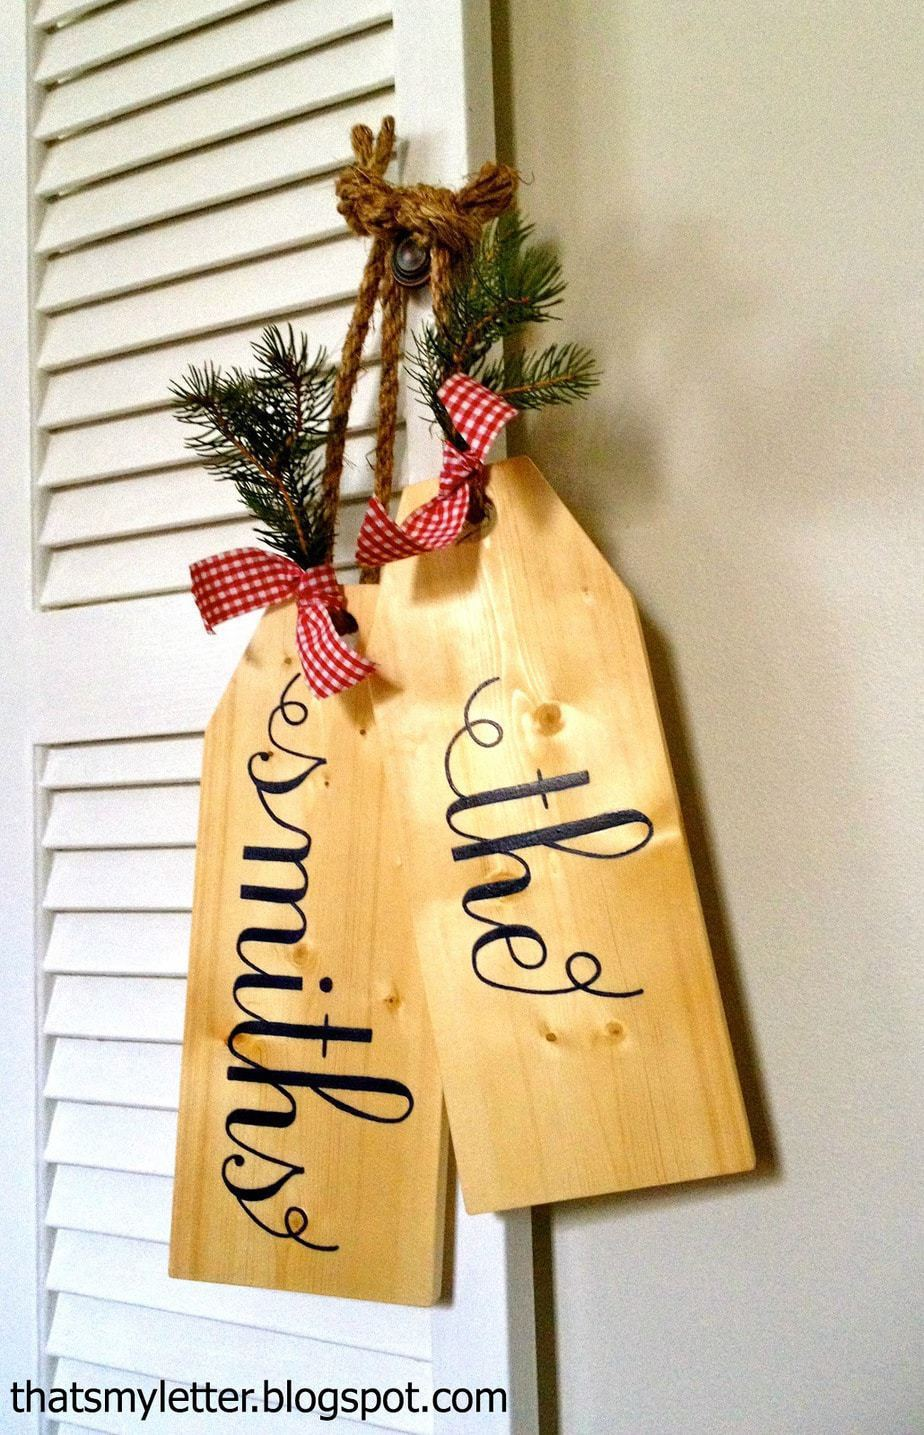 Personalized Giant Wood Tags - Jaime Costiglio